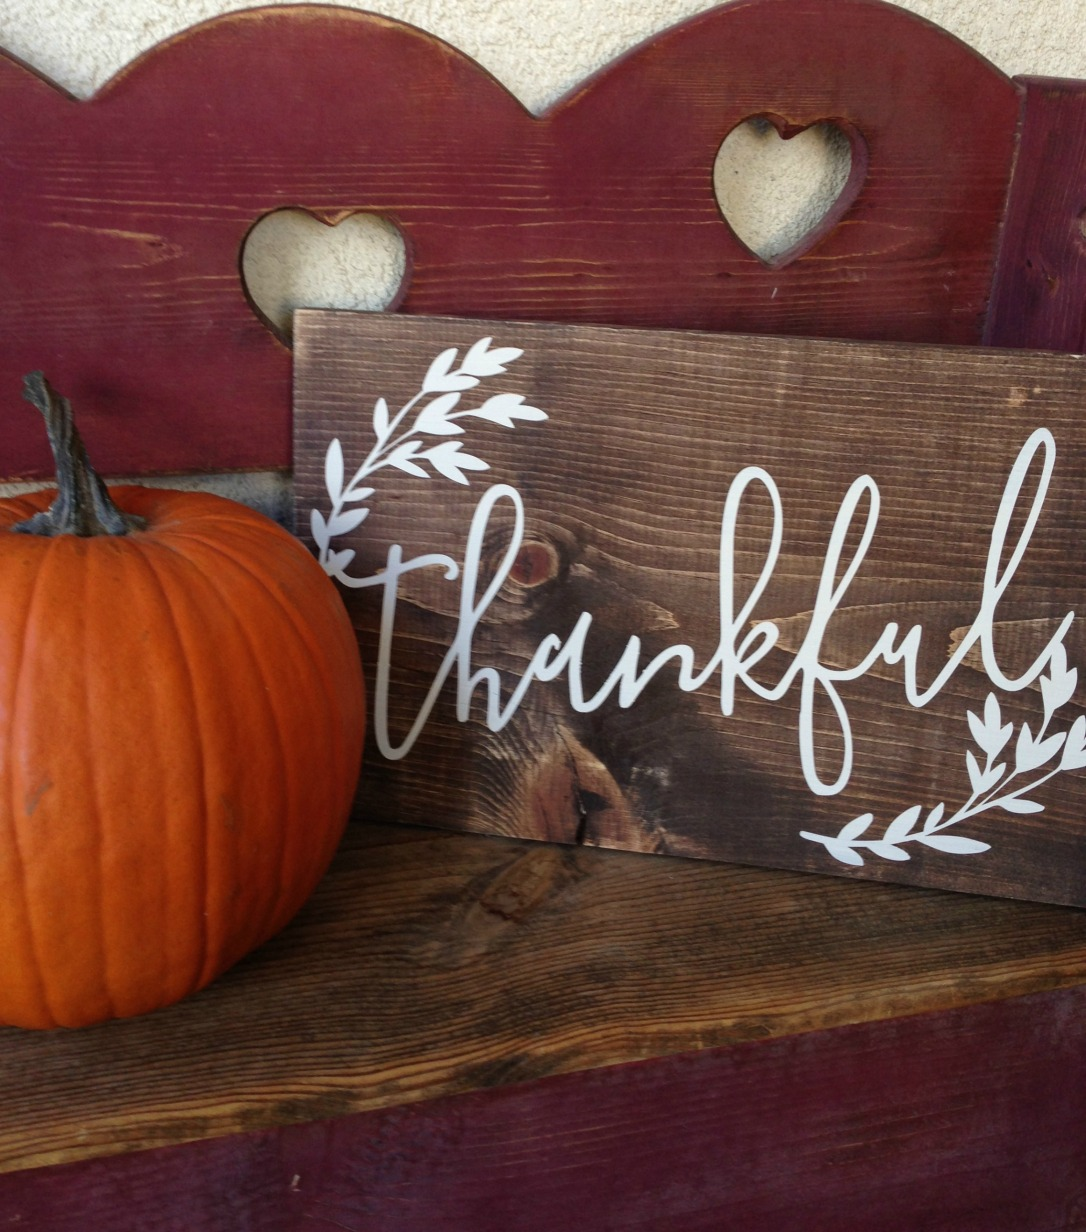 3 WAYS TO THANK GOD NOW https://beckielindsey16.com/2016/11/21/3-ways-to-thank-god-now/